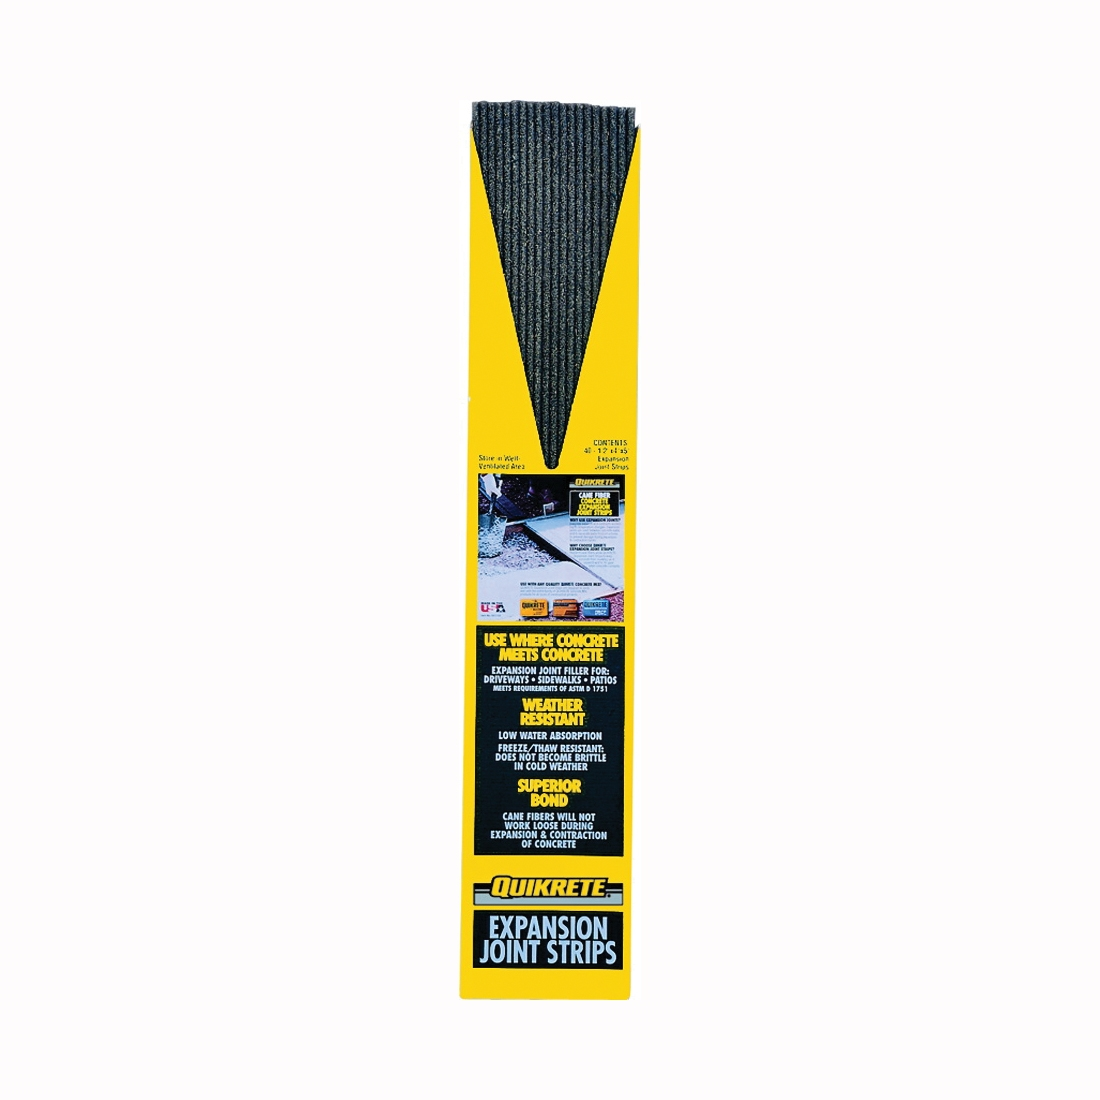 Picture of Quikrete 6917-03 Expansion Joint Strip, 5 ft L, 4 in W, 1/2 in Thick, Steel, Black